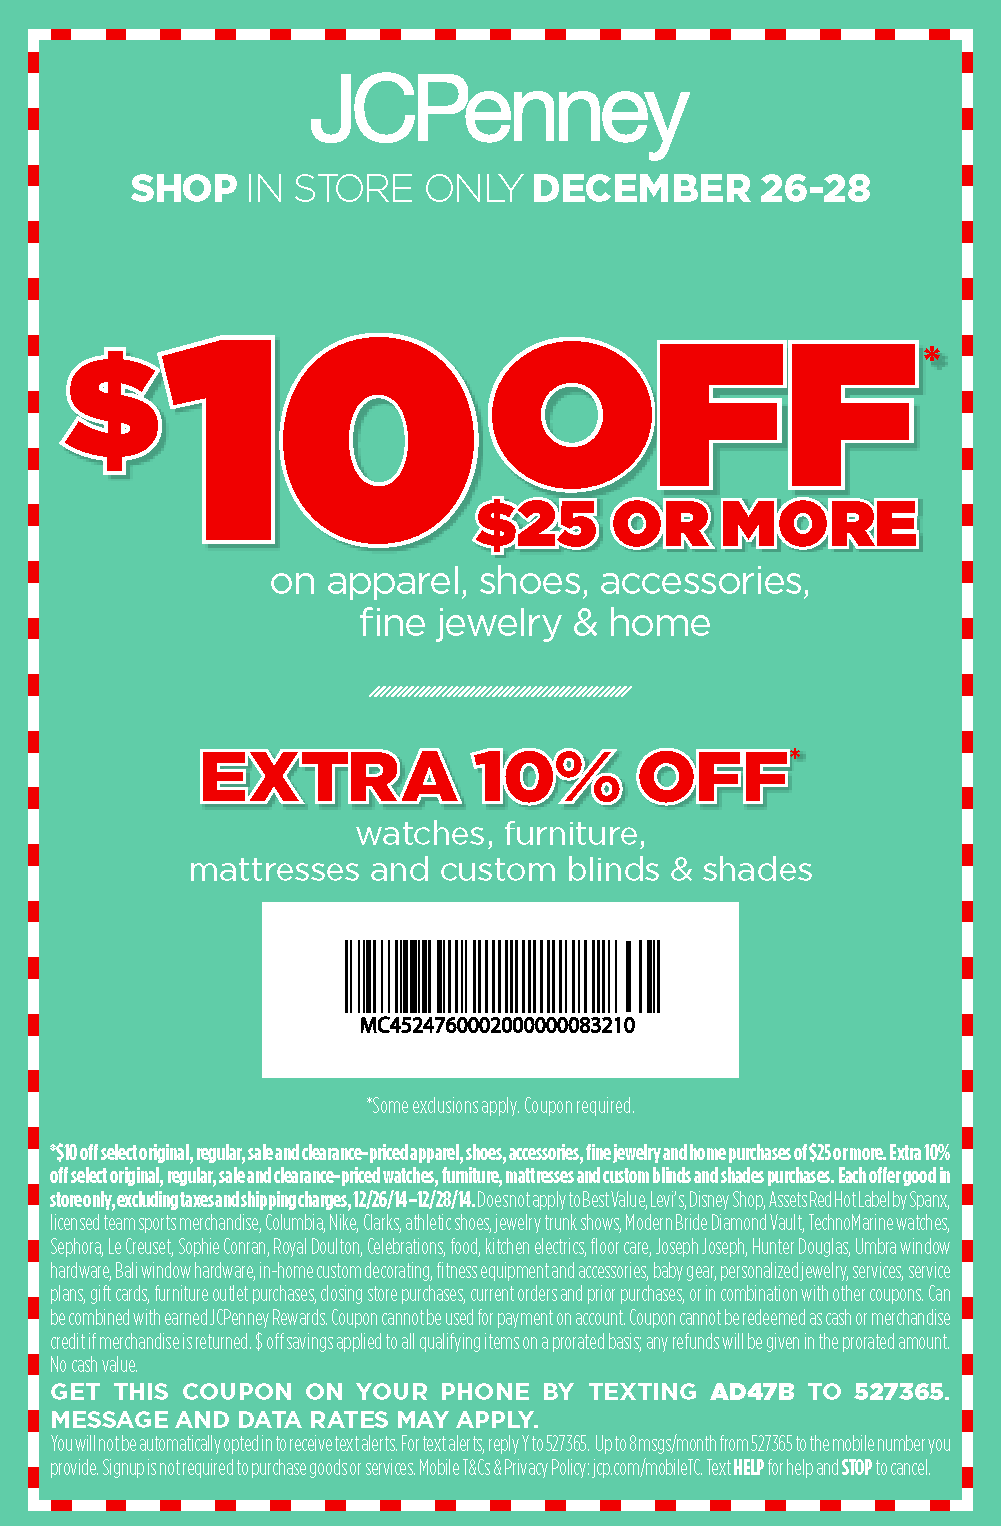 Staples coupons at mennopoolbi.gq for December 4, Find the latest coupon codes, online promotional codes and the best coupons to save you $20 off at Staples. Our deal hunters continually update our pages with the most recent Staples promo codes & coupons for , so check back often!